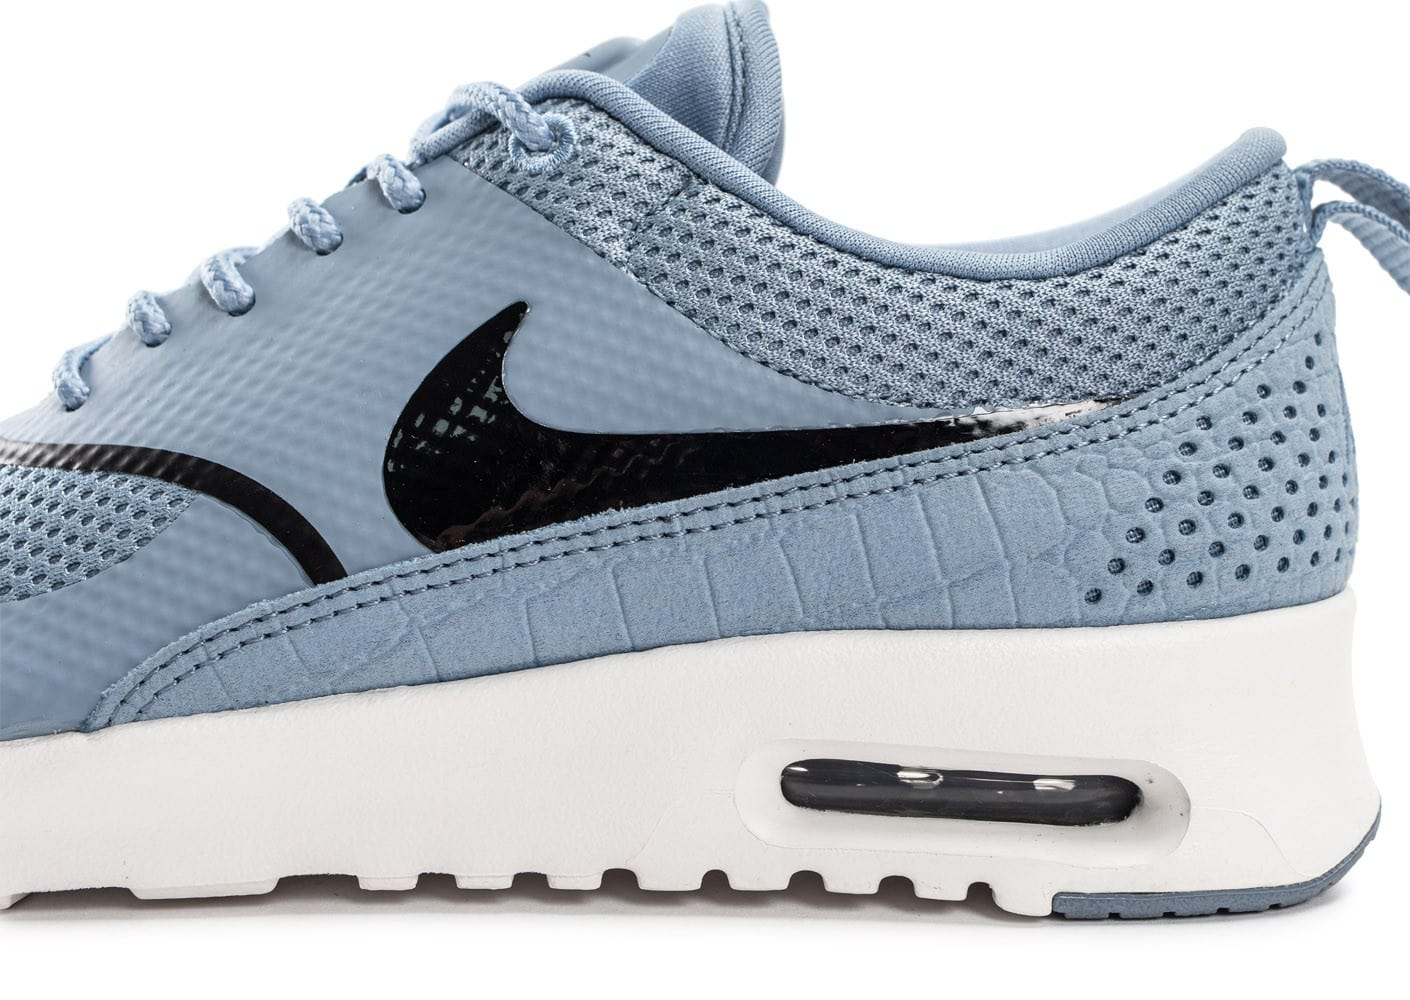 Air Max Thea Ultra - Chaussures - Low-dessus Et Chaussures De Sport Nike vU2VROo9